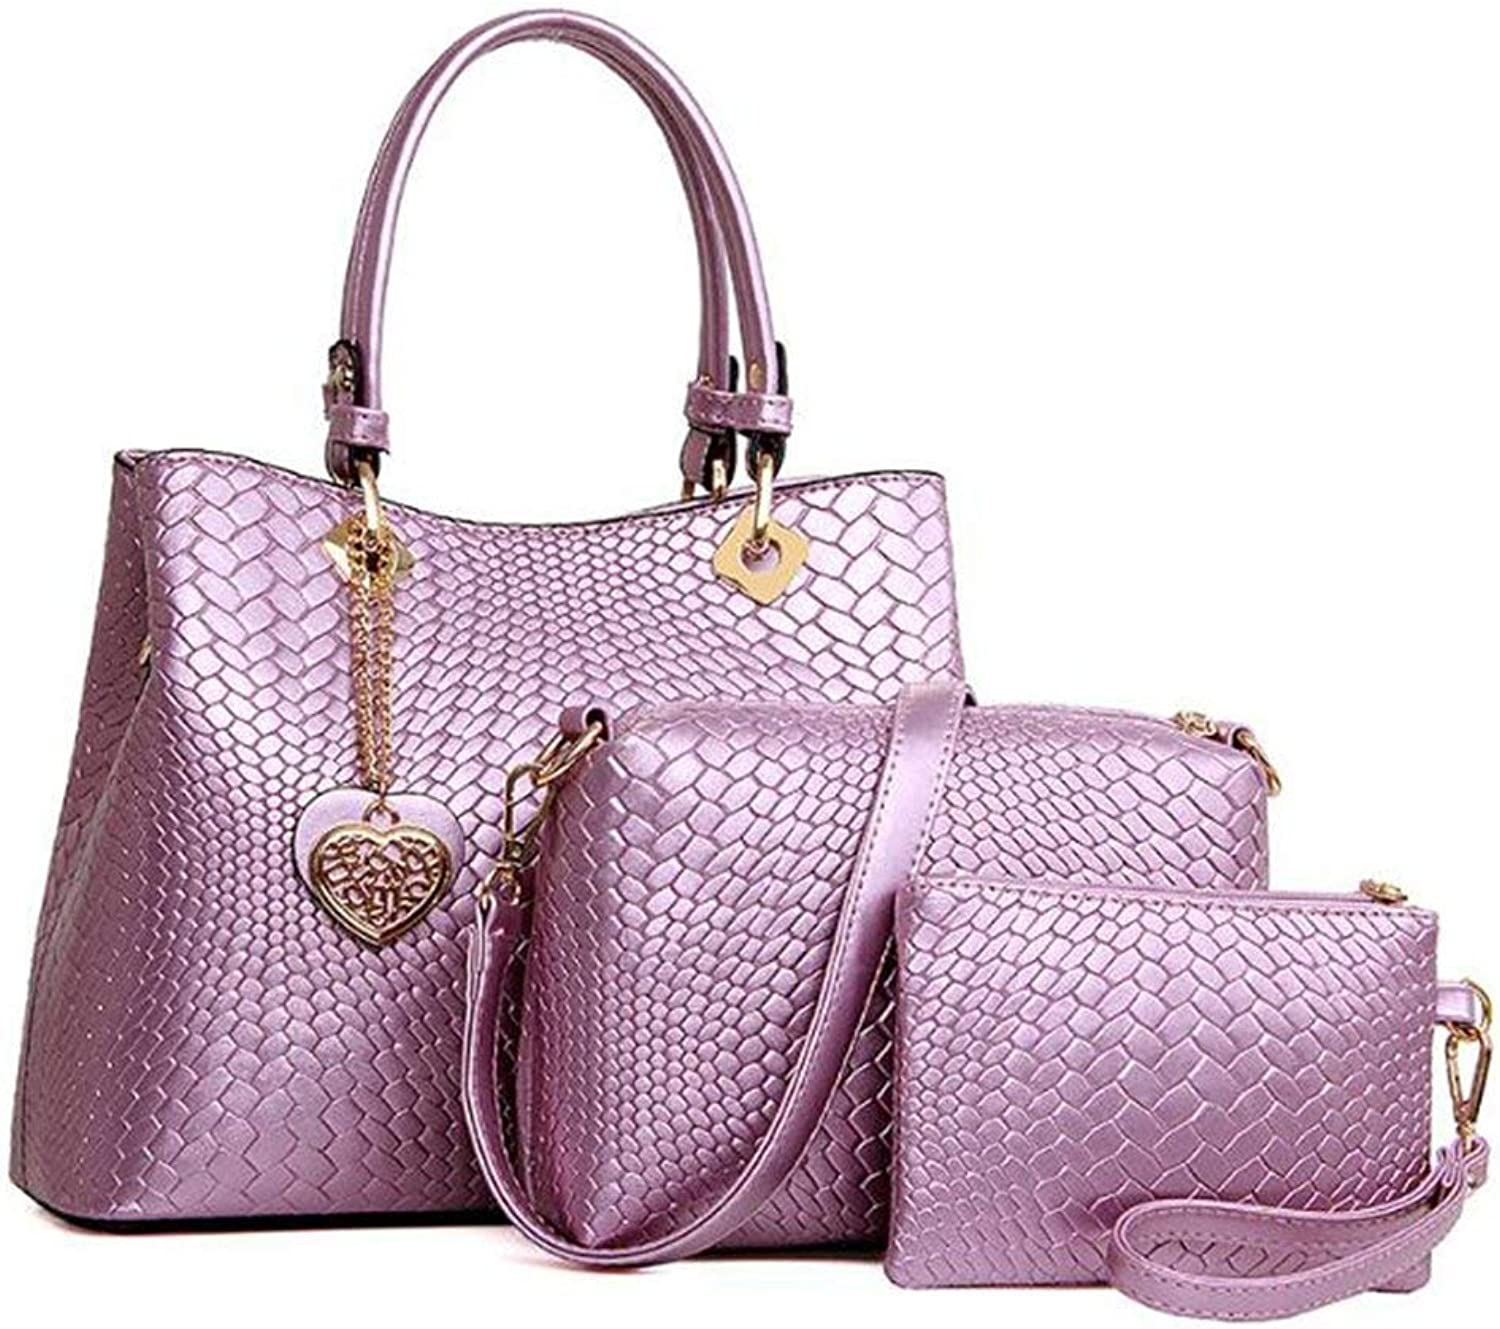 66da52803 Ladies Handbag Women Fashion Leather Handbag,New Three-Piece Suit Handbag  Diagonal Package Stone Pattern Mother Bag (color Purple) Clutch PU ...